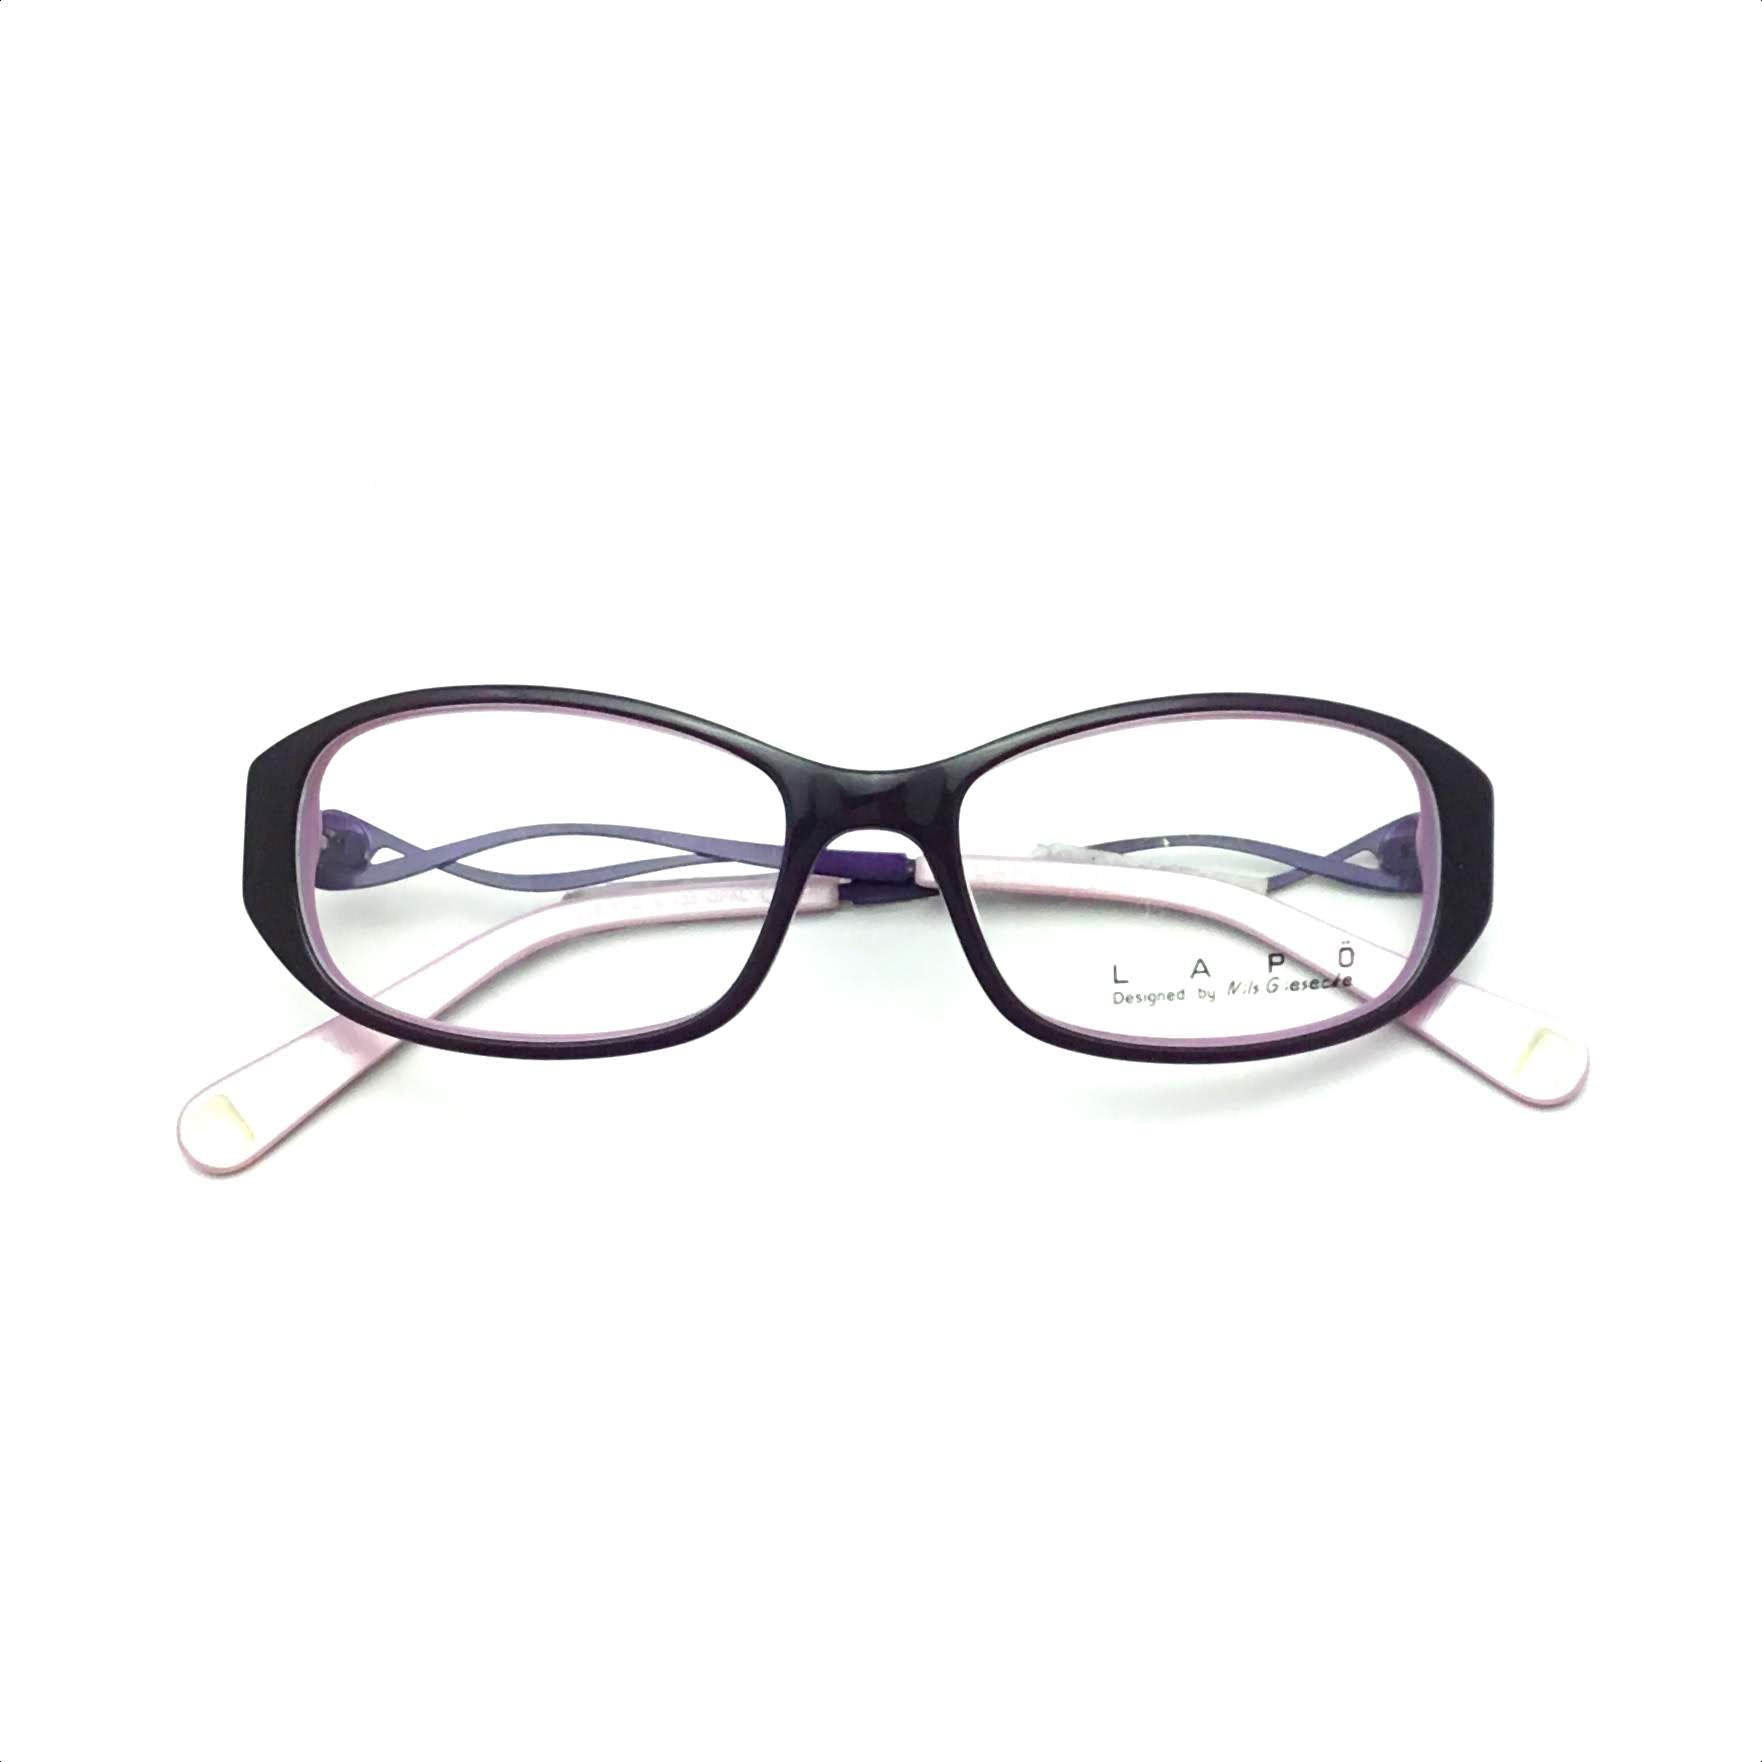 Lapo Glasses $109 ITALY D12